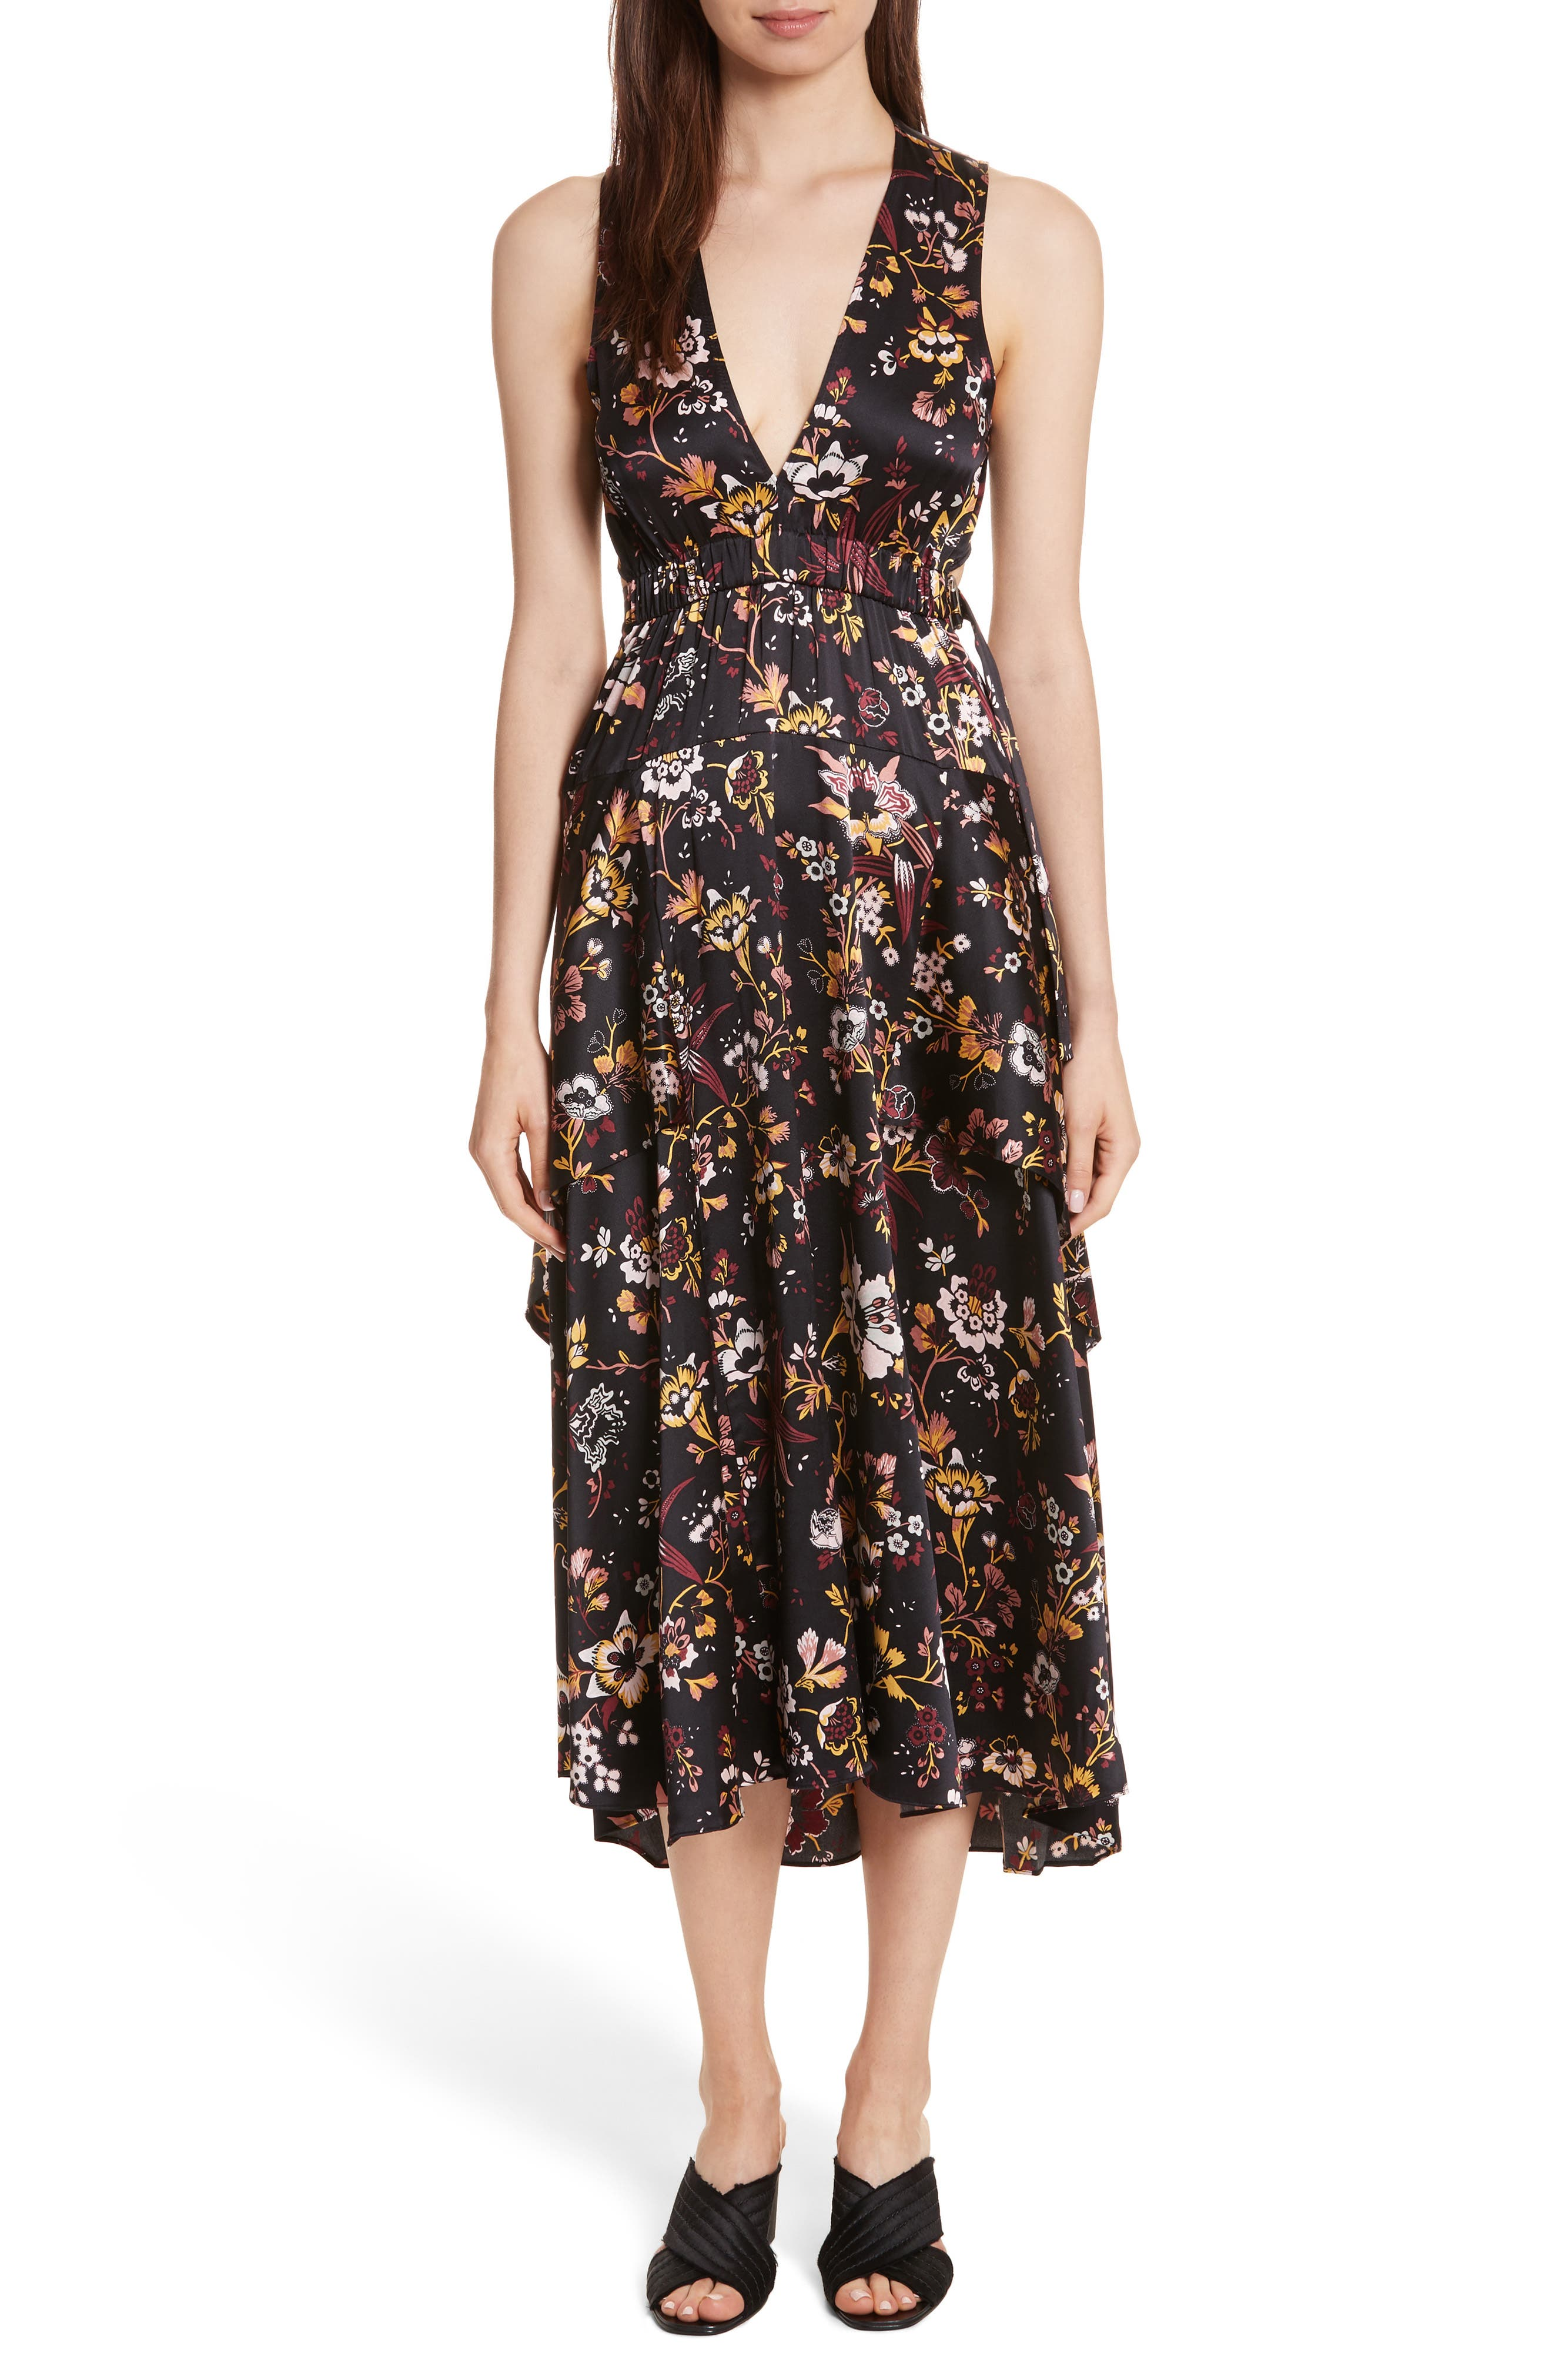 Verbena Floral Print Stretch Silk Dress,                             Main thumbnail 1, color,                             Black/ Grey/ Mustard